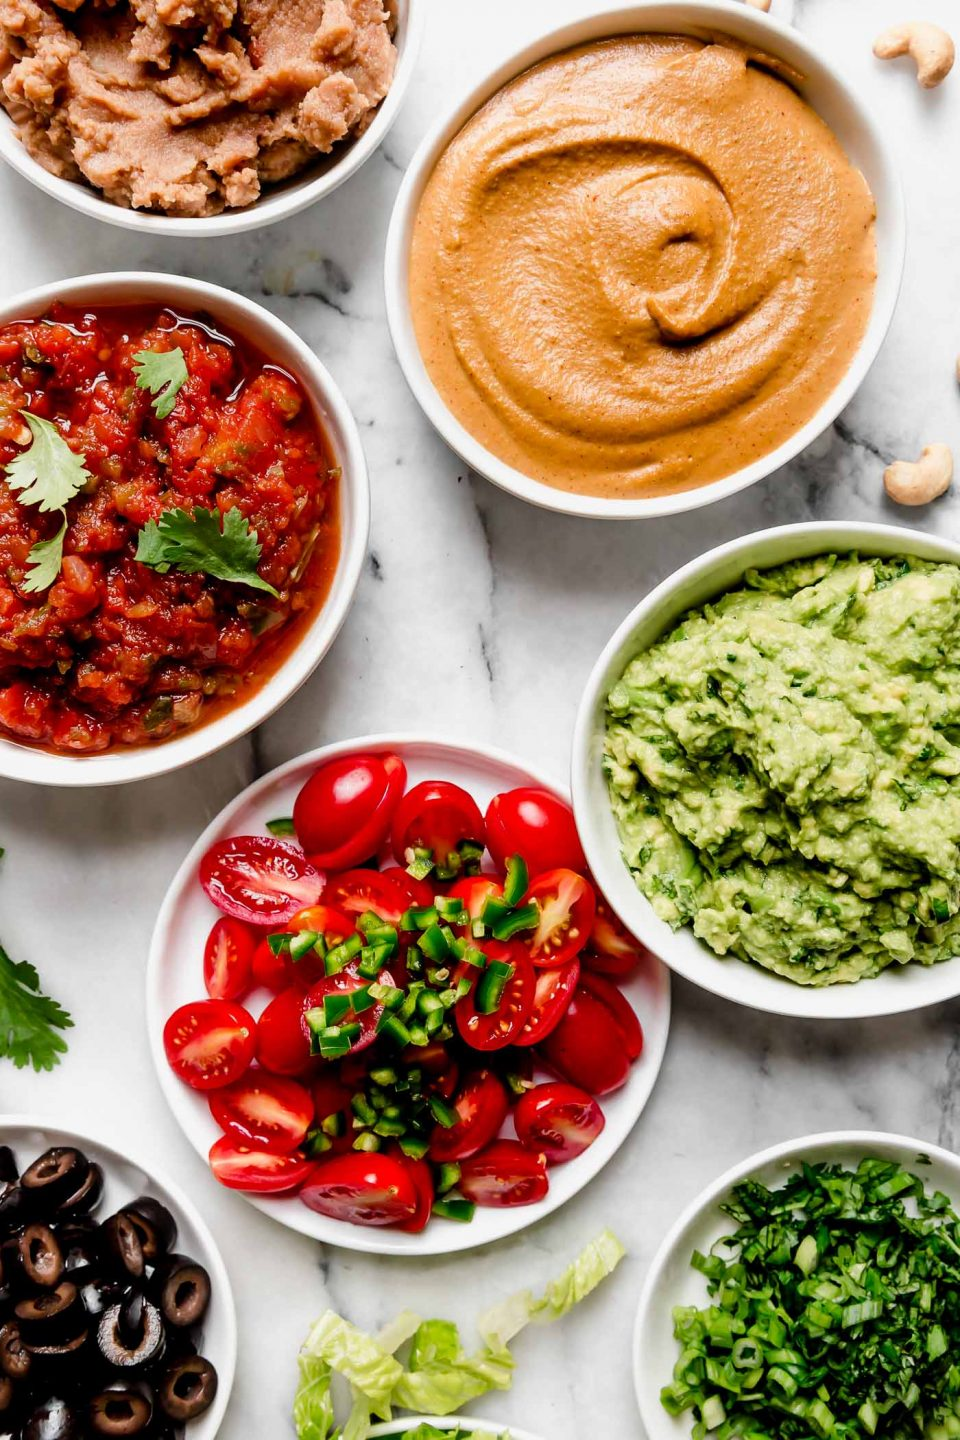 Vegan 7-Layer Dip Recipe Ingredients (refried beans, cashew queso, smashed avocado, salsa of choice, tomatoes, jalapeno peppers, olives, lettuce & cilantro)